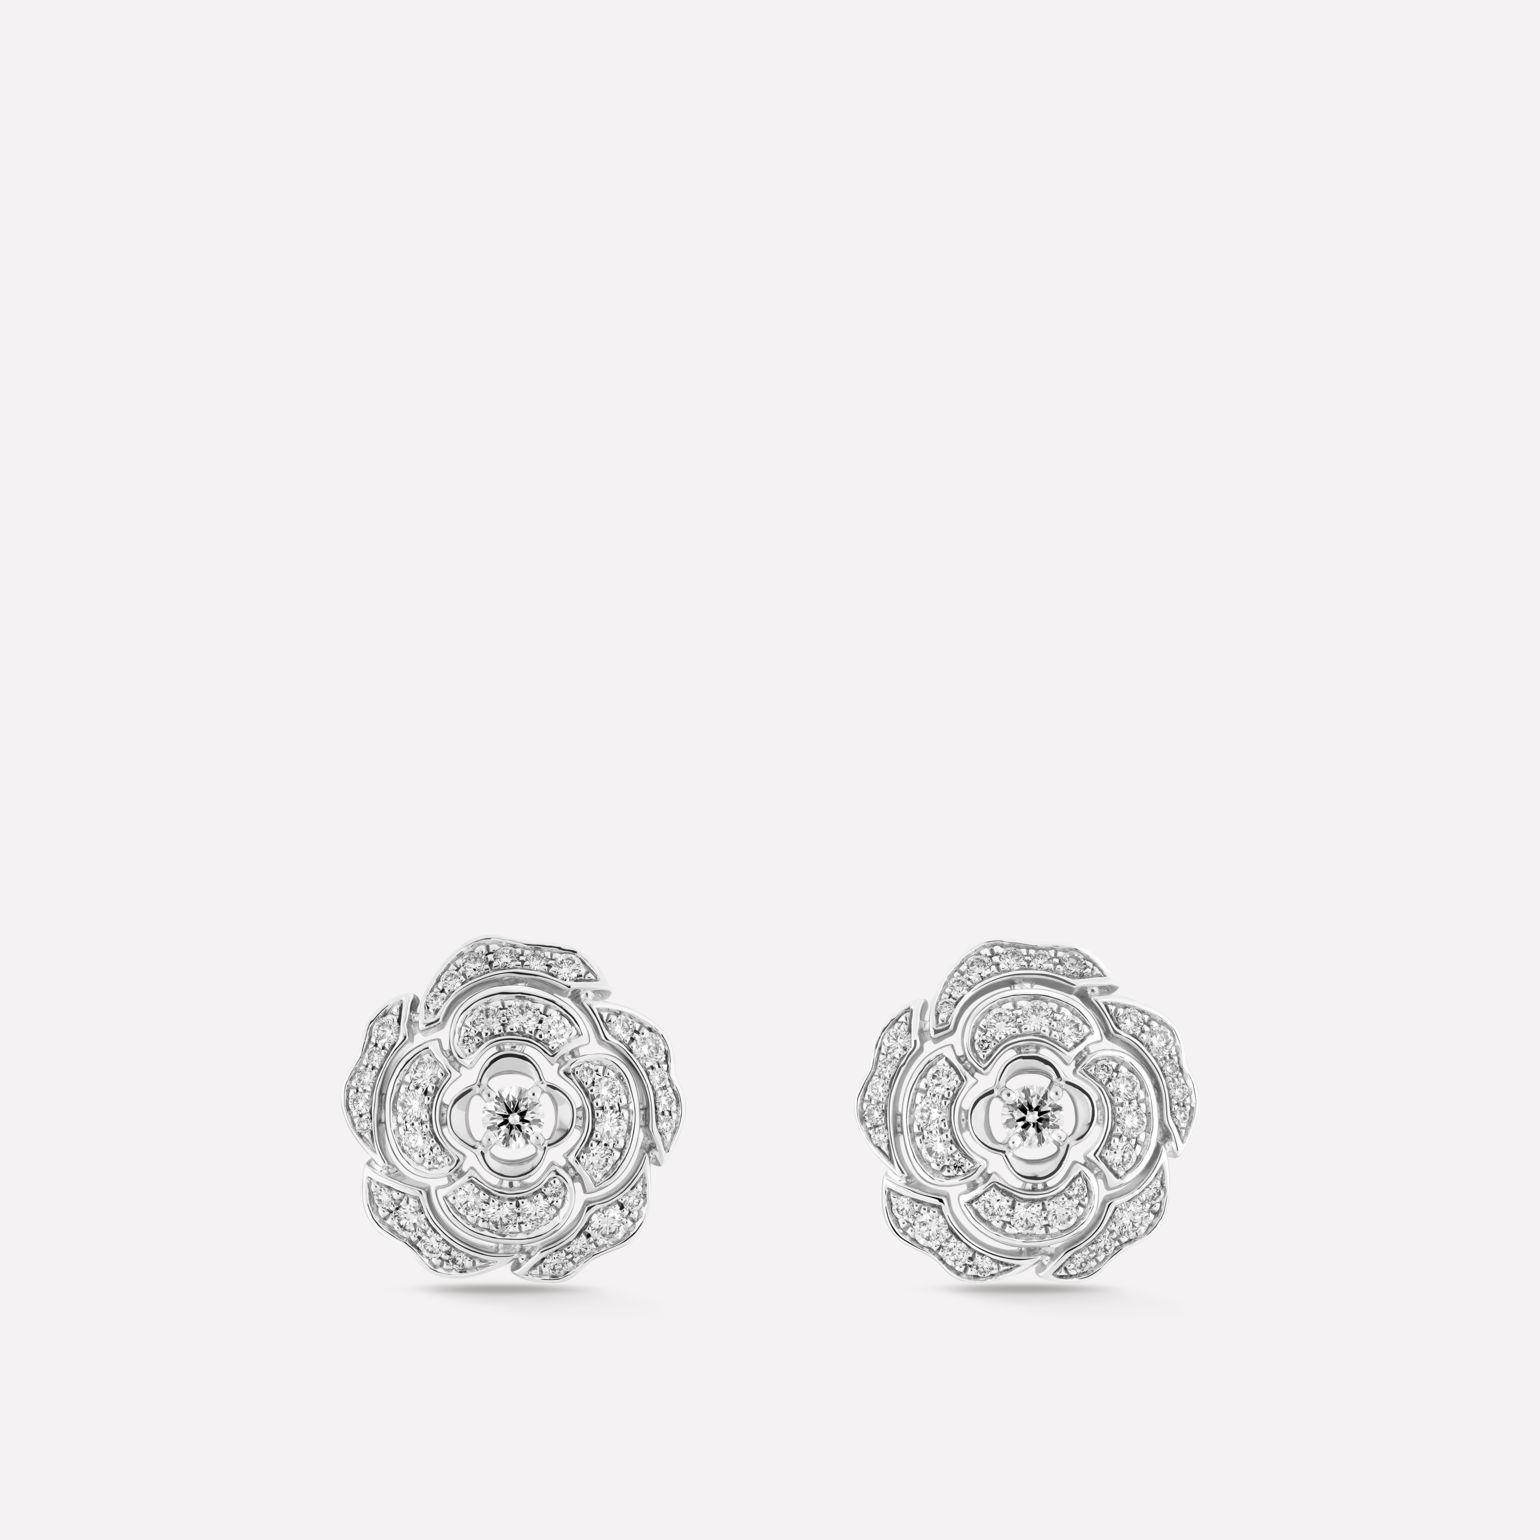 Camélia Earrings Camellia bud motif in 18K white gold, diamonds and central diamond